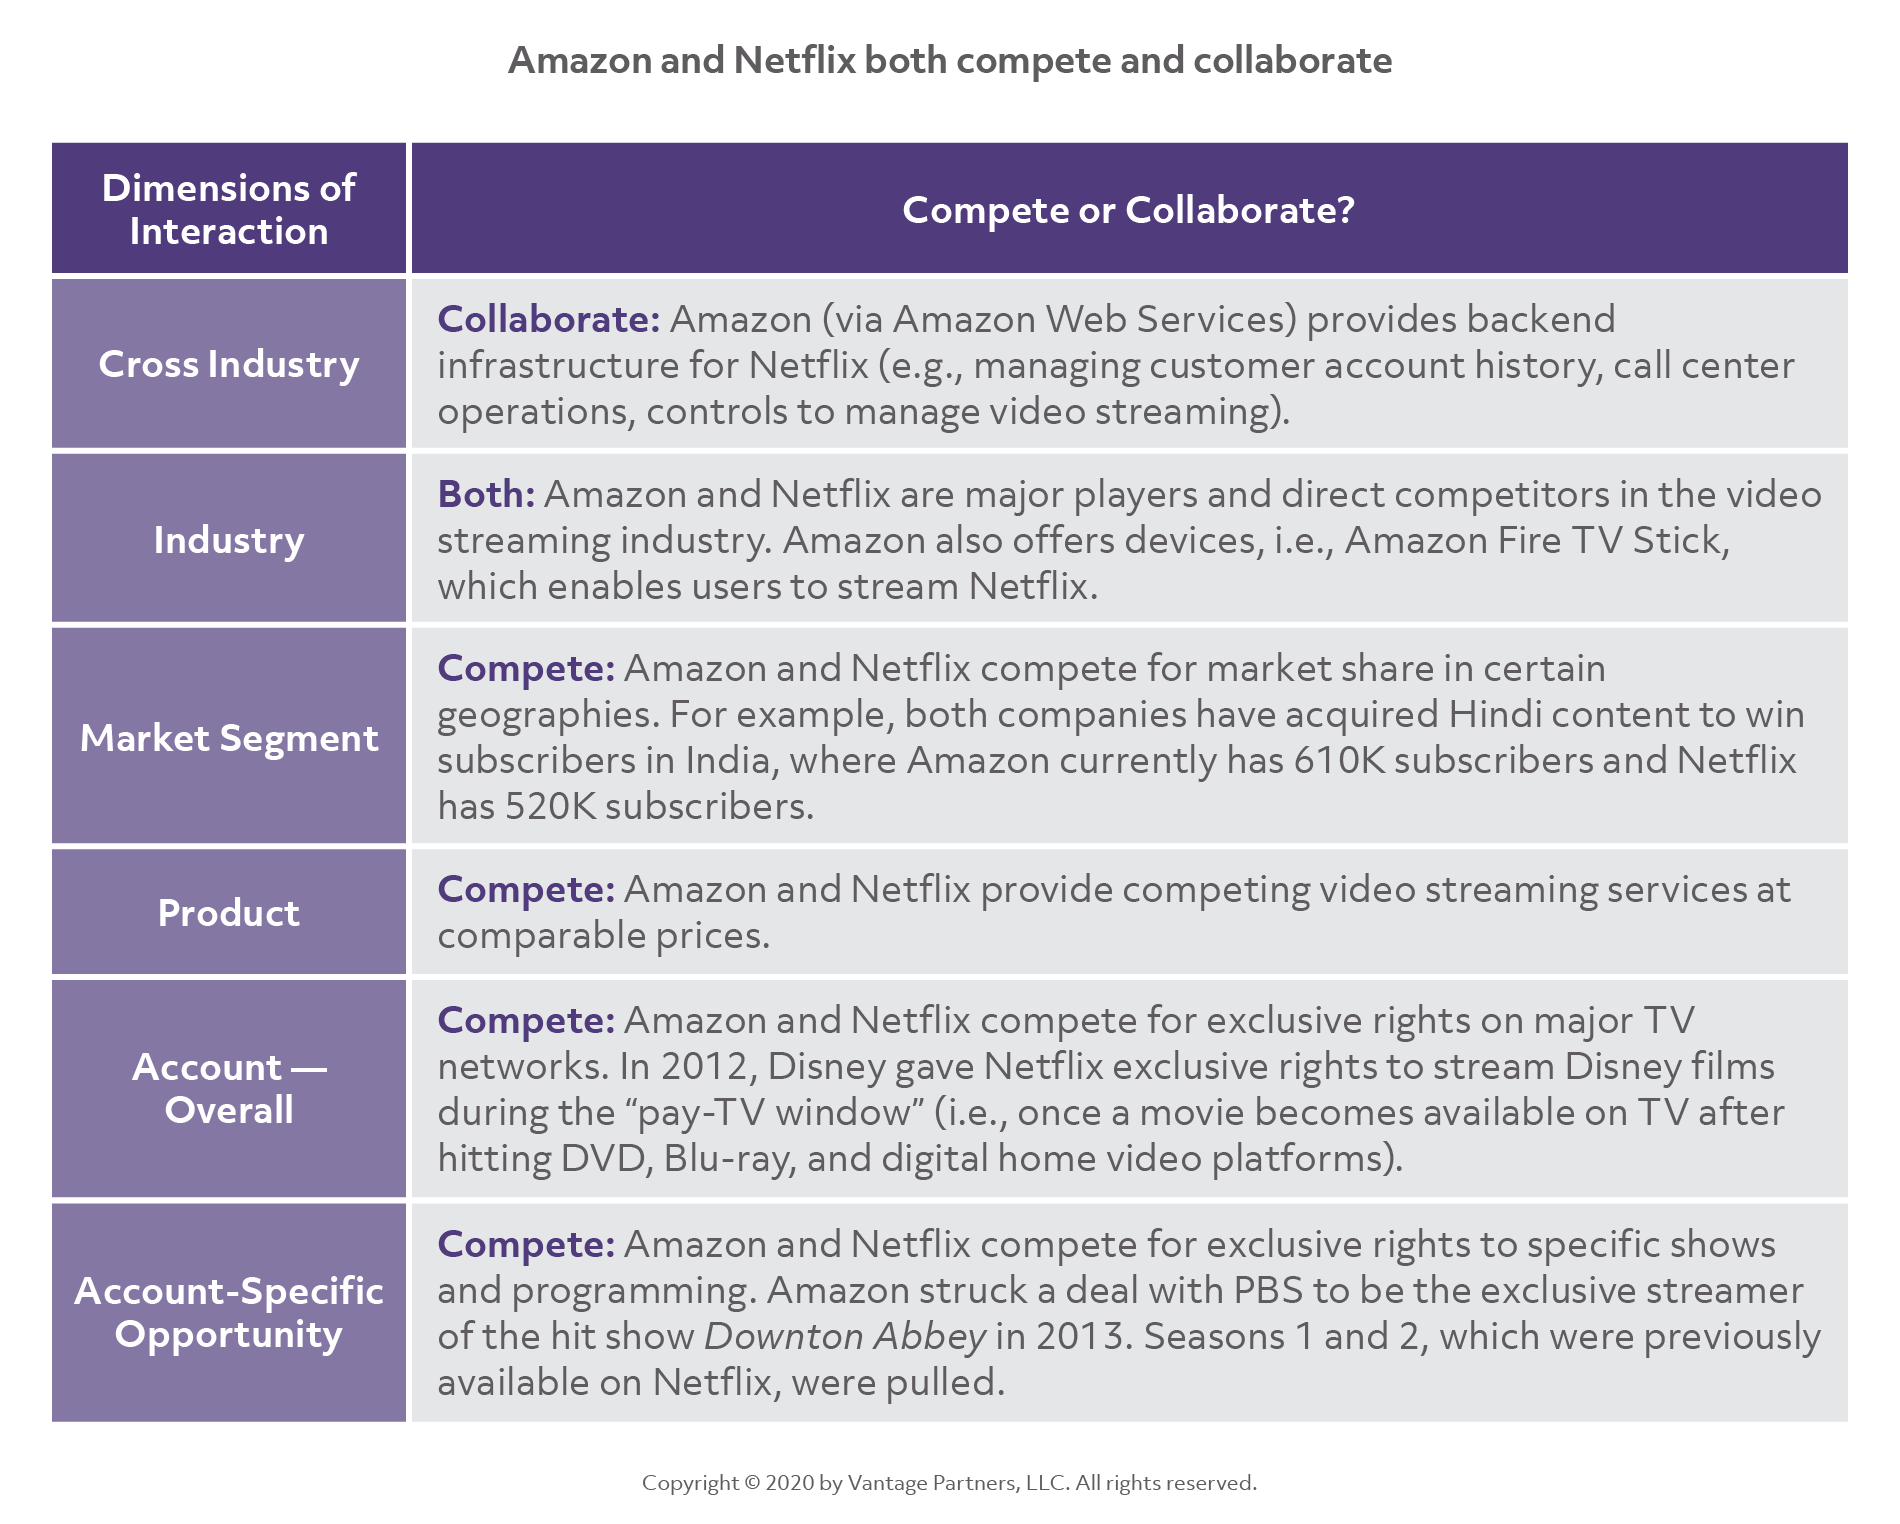 Amazon and Netflix both compete and collab_2X